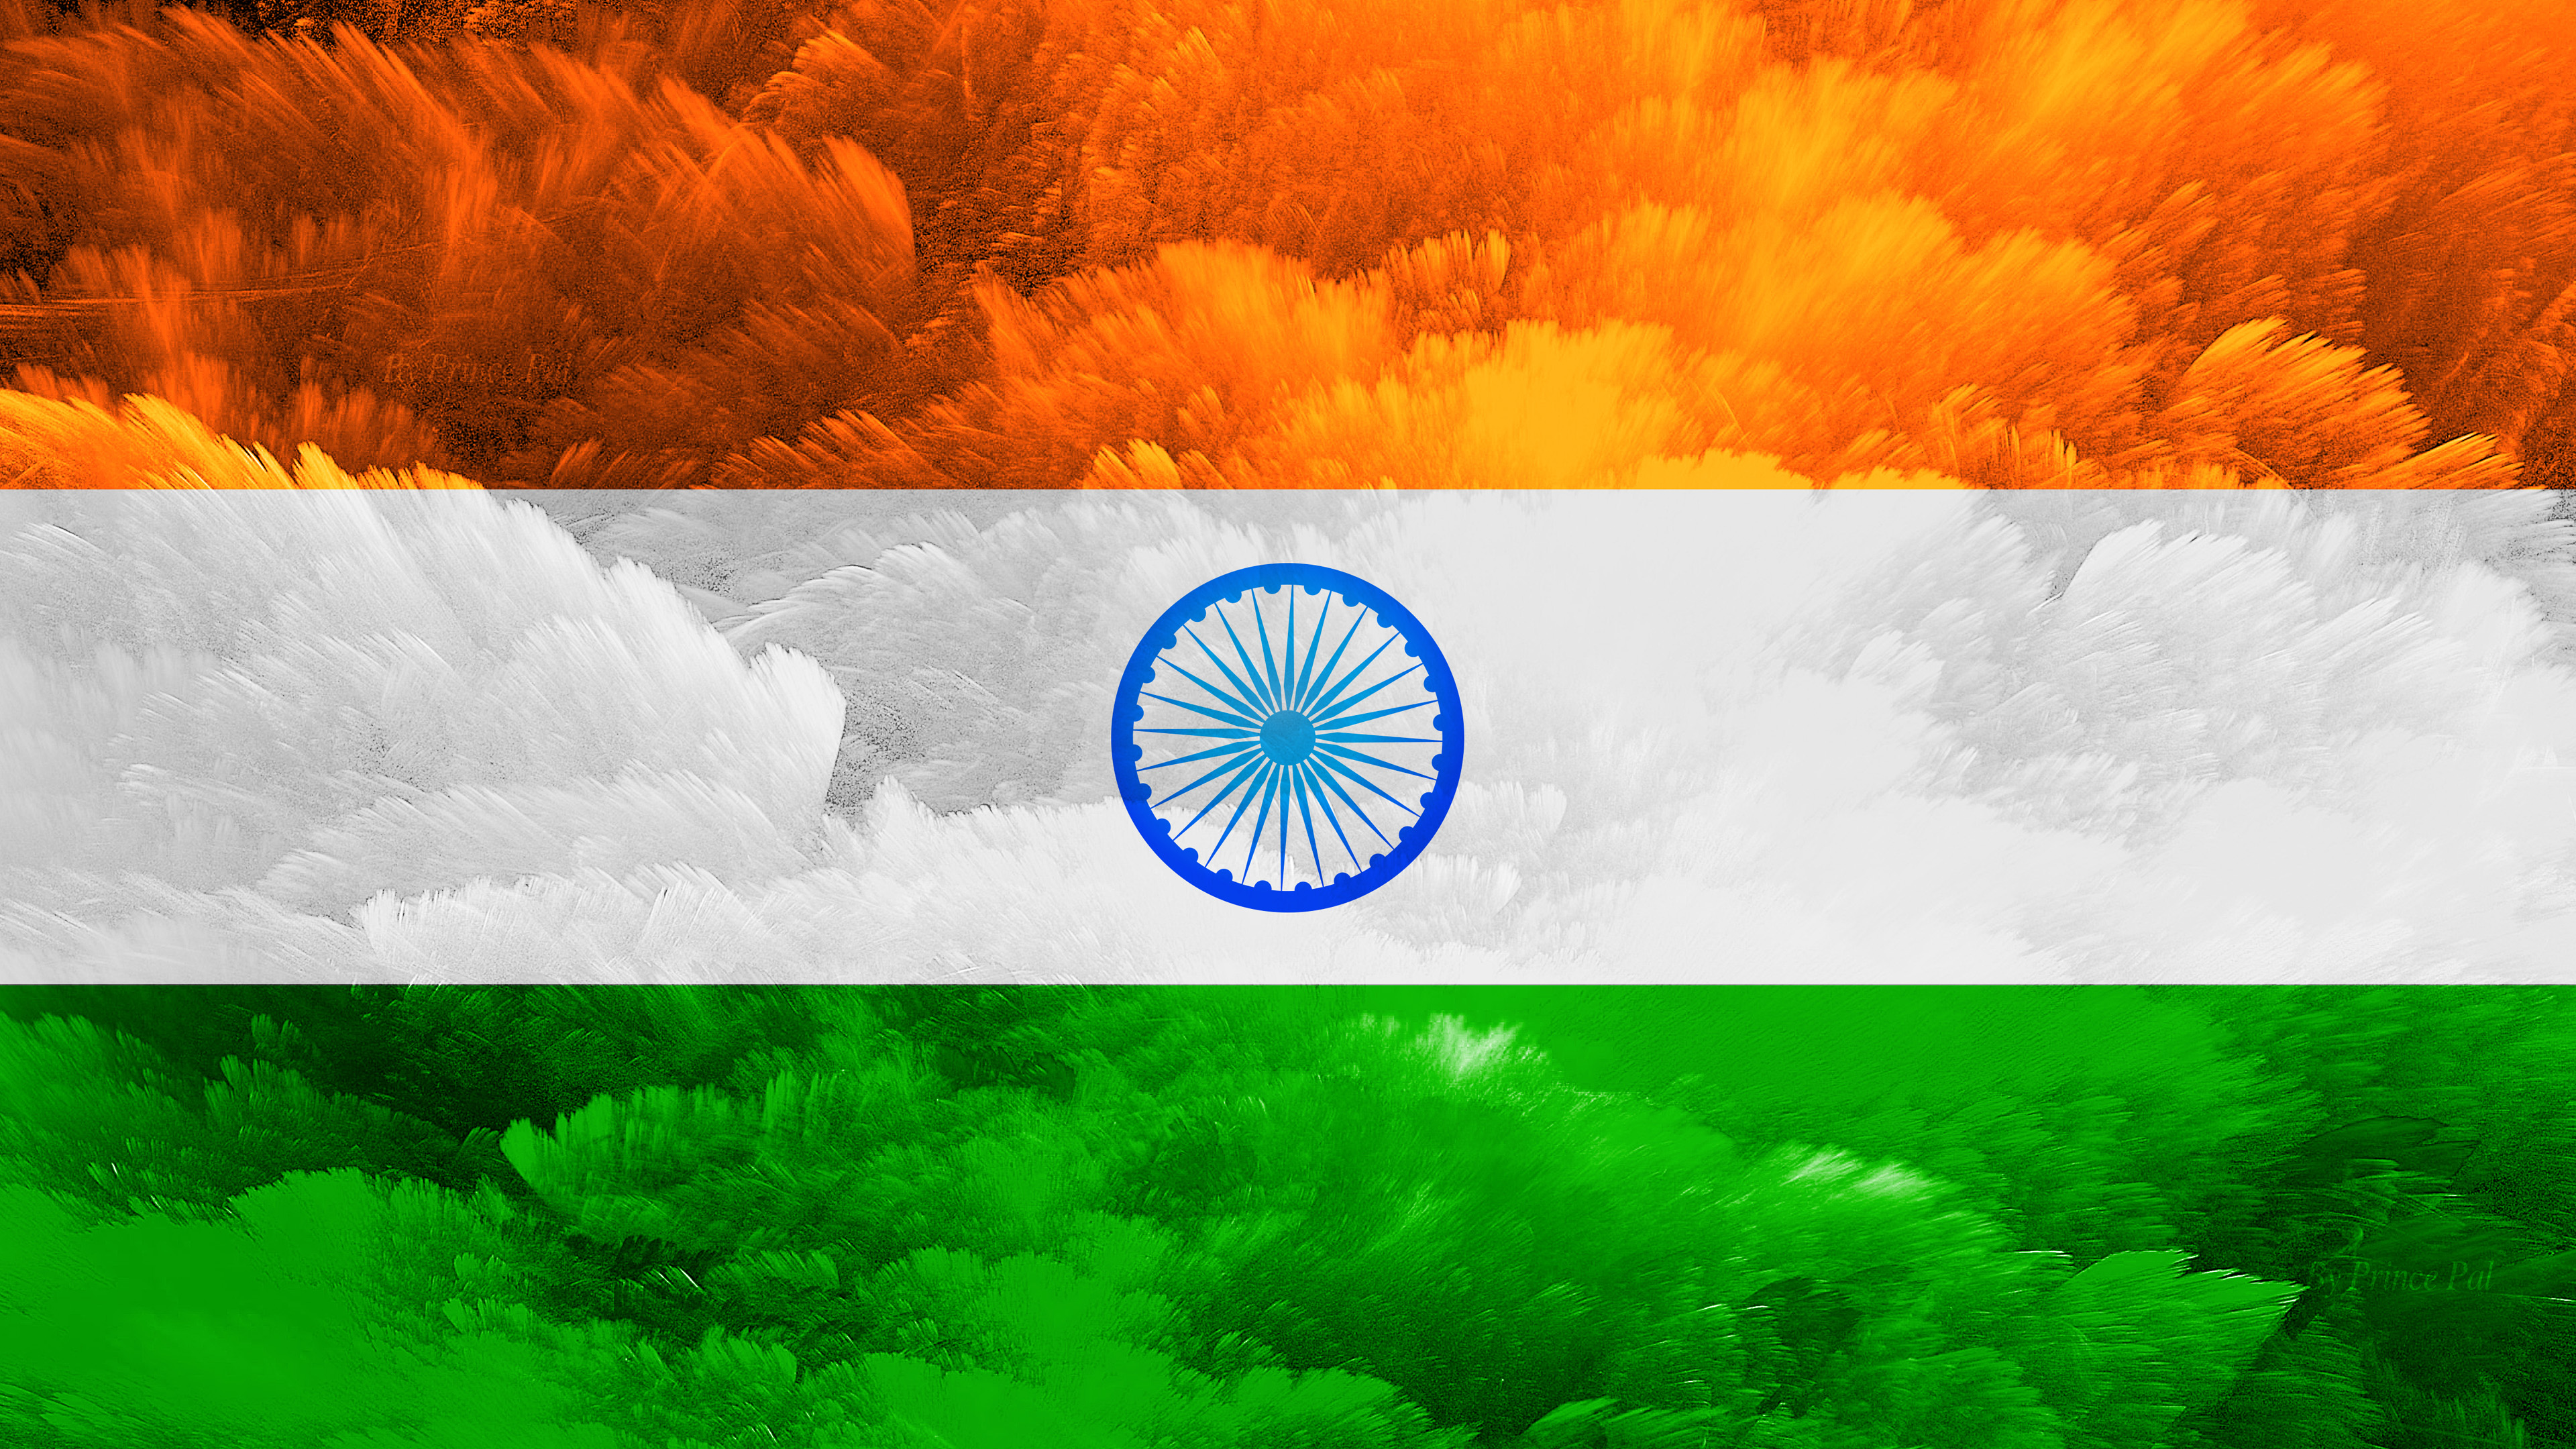 4k Wallpaper Of Indian Flag For Independence Day And